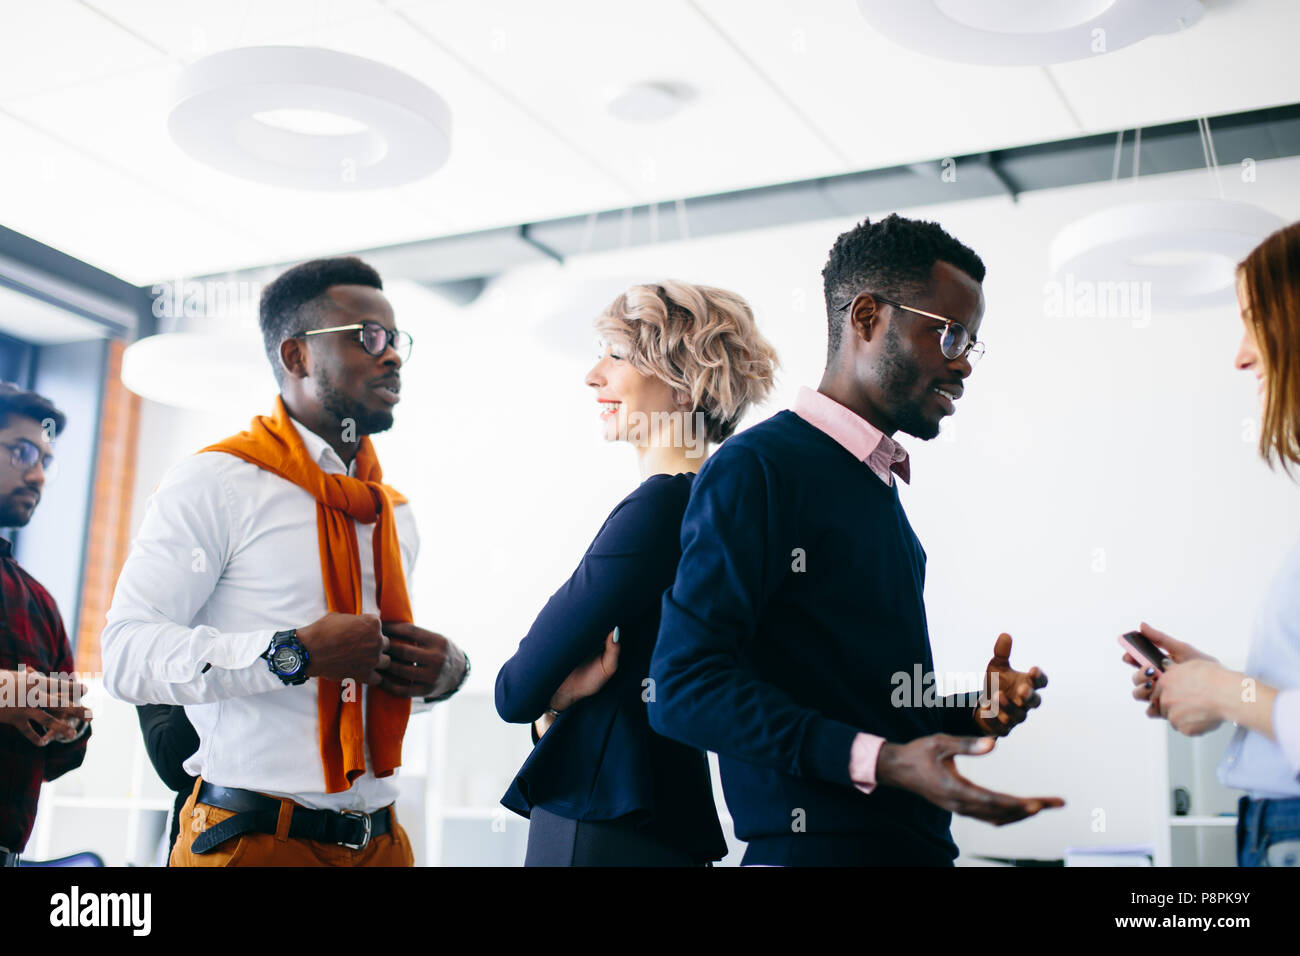 young energetic multiracial people are doing a barber in the studio - Stock Image